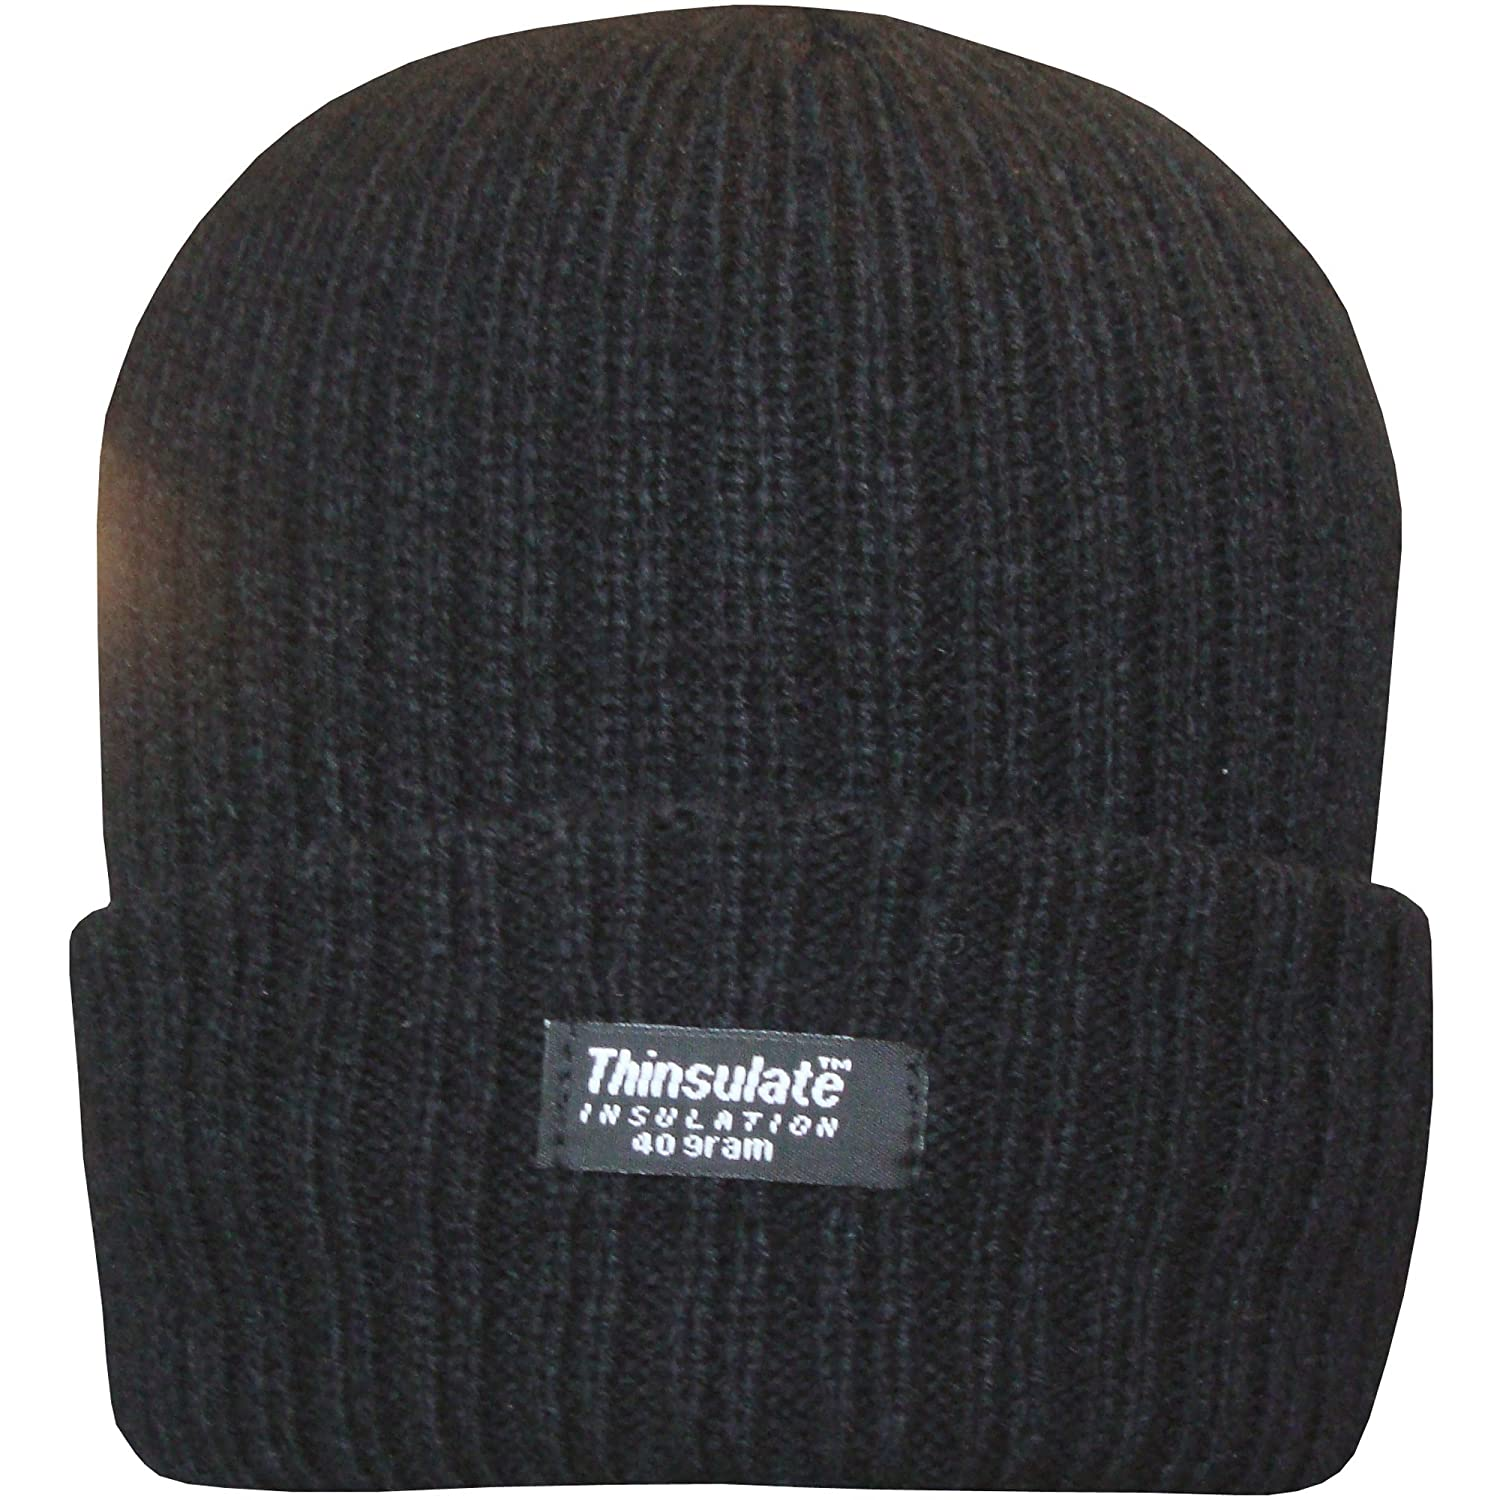 8f2f8758c TeddyT's Ladies Thinsulate Chunky Knit Fleece Lined Insulated Thermal  Winter Hat